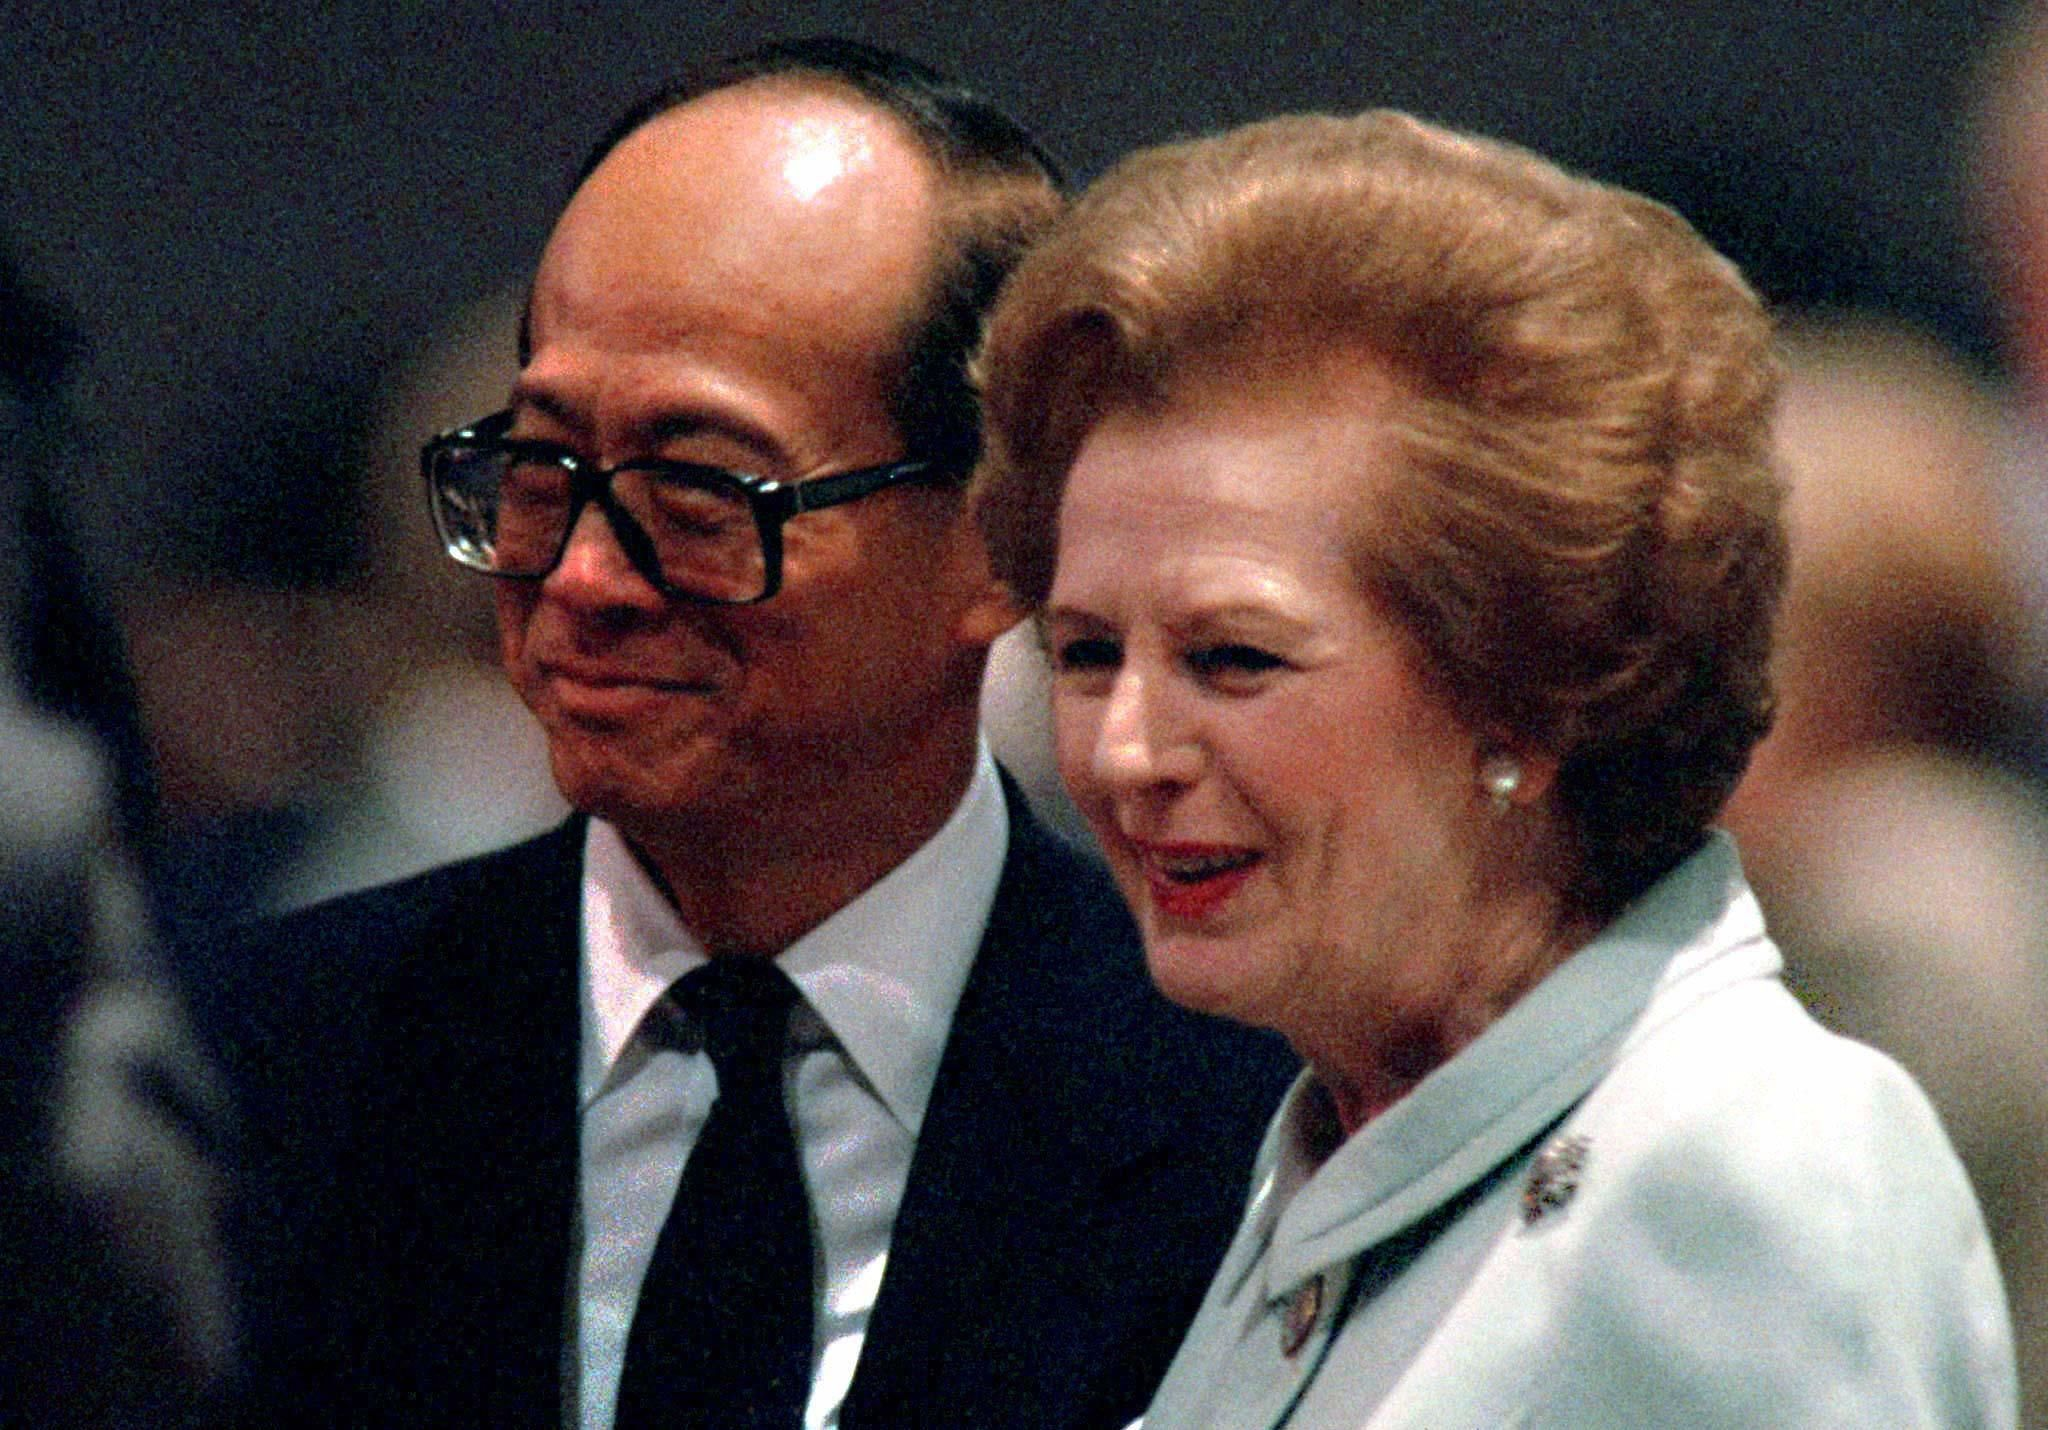 Li Ka-shing and Margaret Thatcher